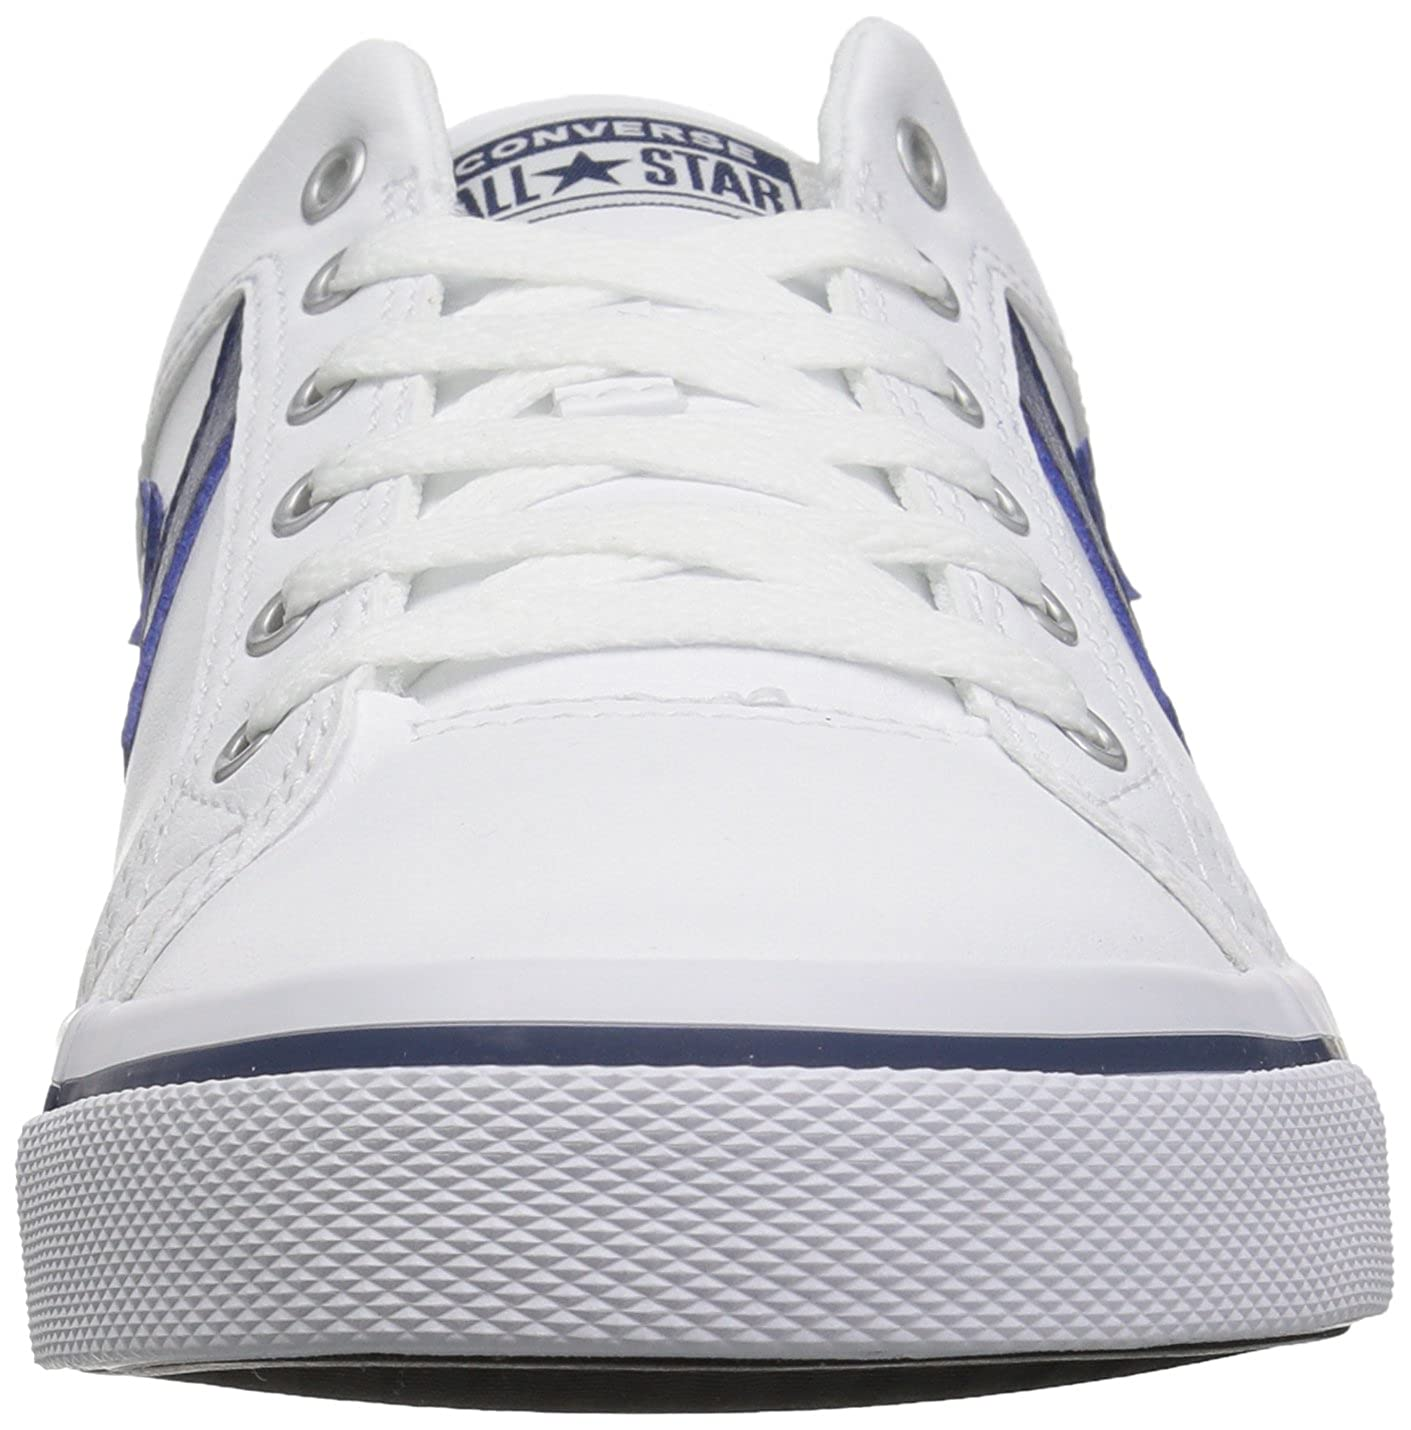 Converse EL Distrito Leather Low Top Sneaker Sneakers B07CQCFP8V Fashion Sneakers Sneaker feb8c9